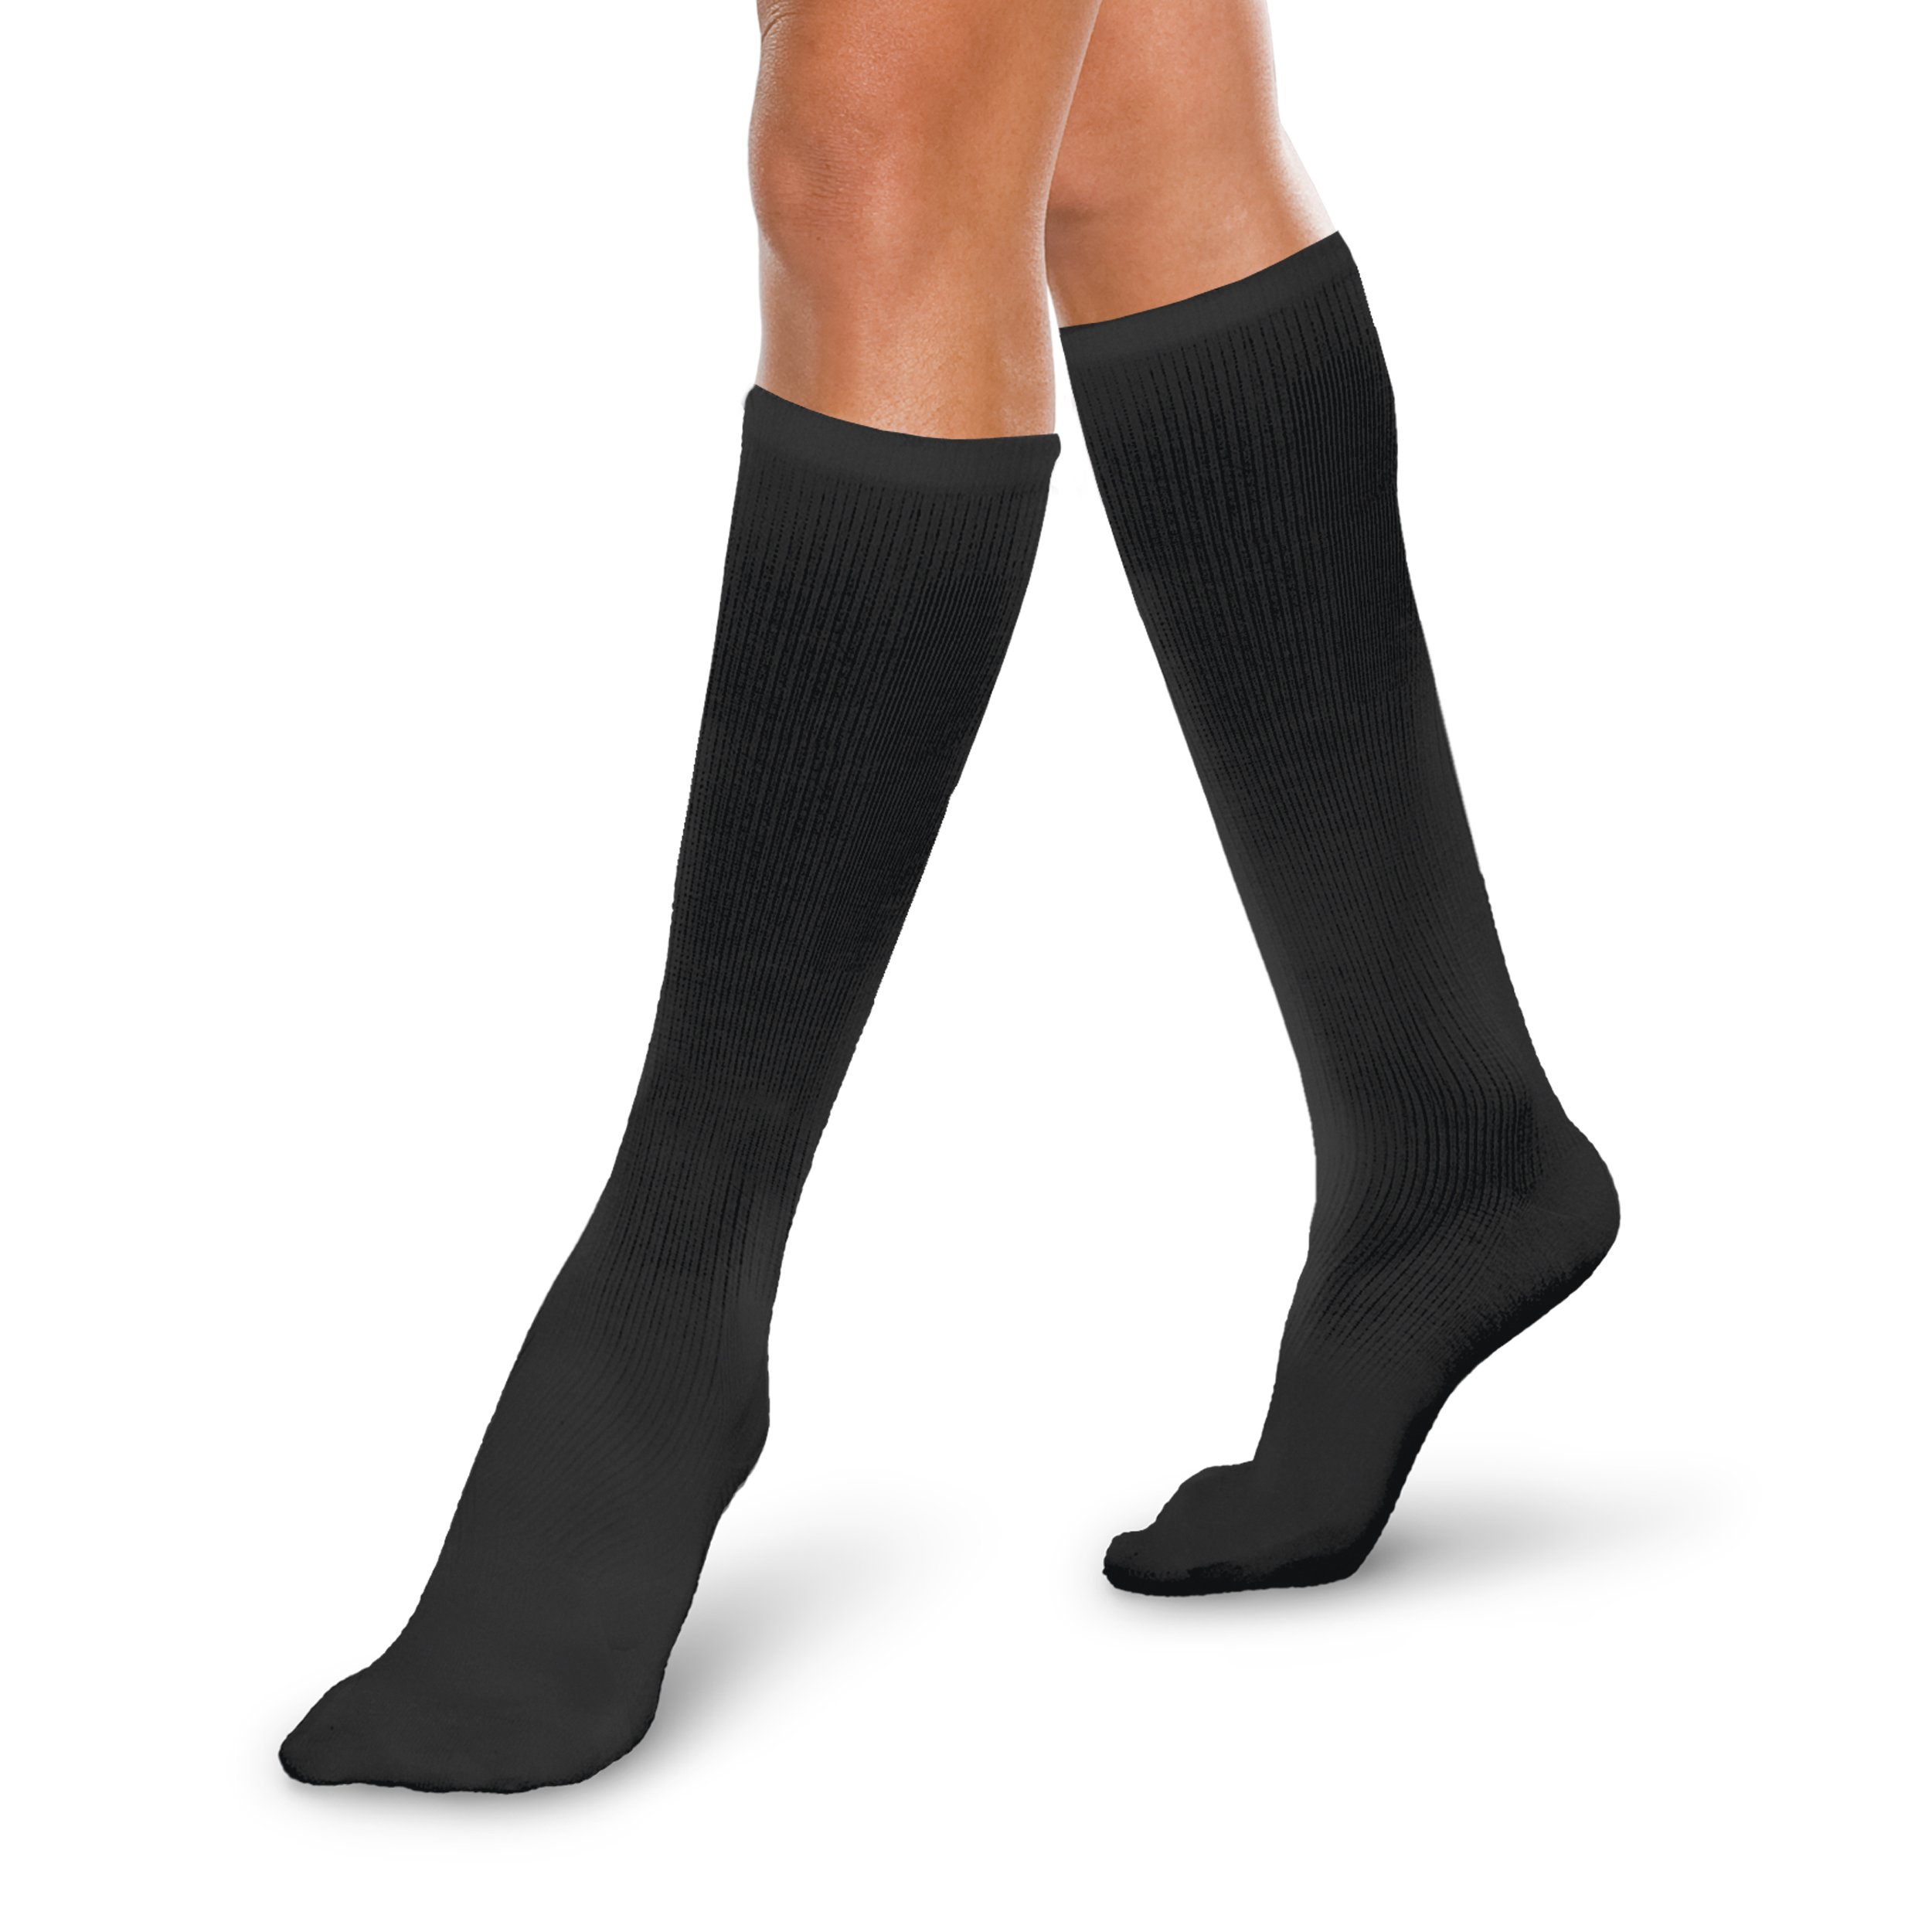 Core-Spun 20-30mmHg Moderate Graduated Compression Support Knee High Socks (Black, Large)